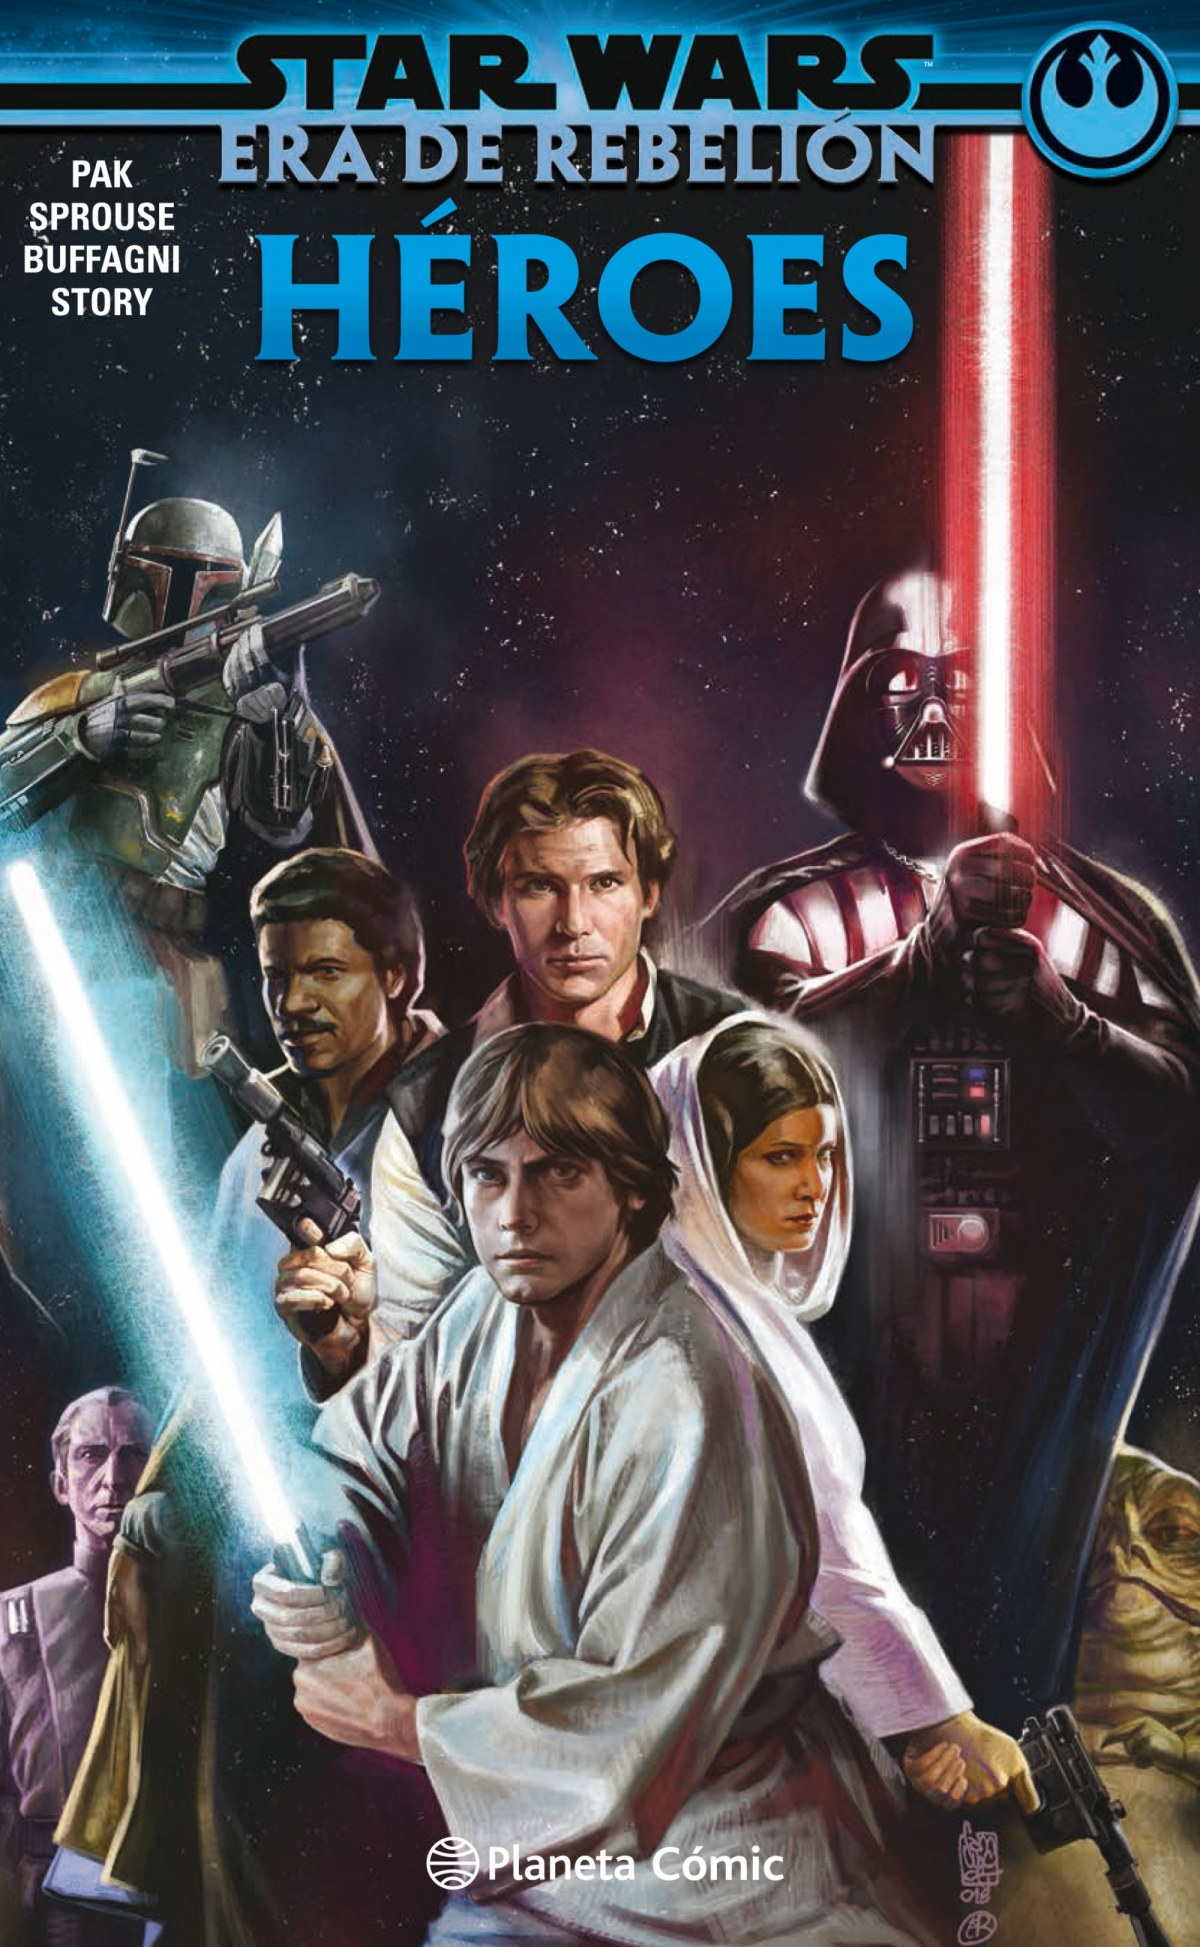 Star Wars Era de la Rebelión: Héroes